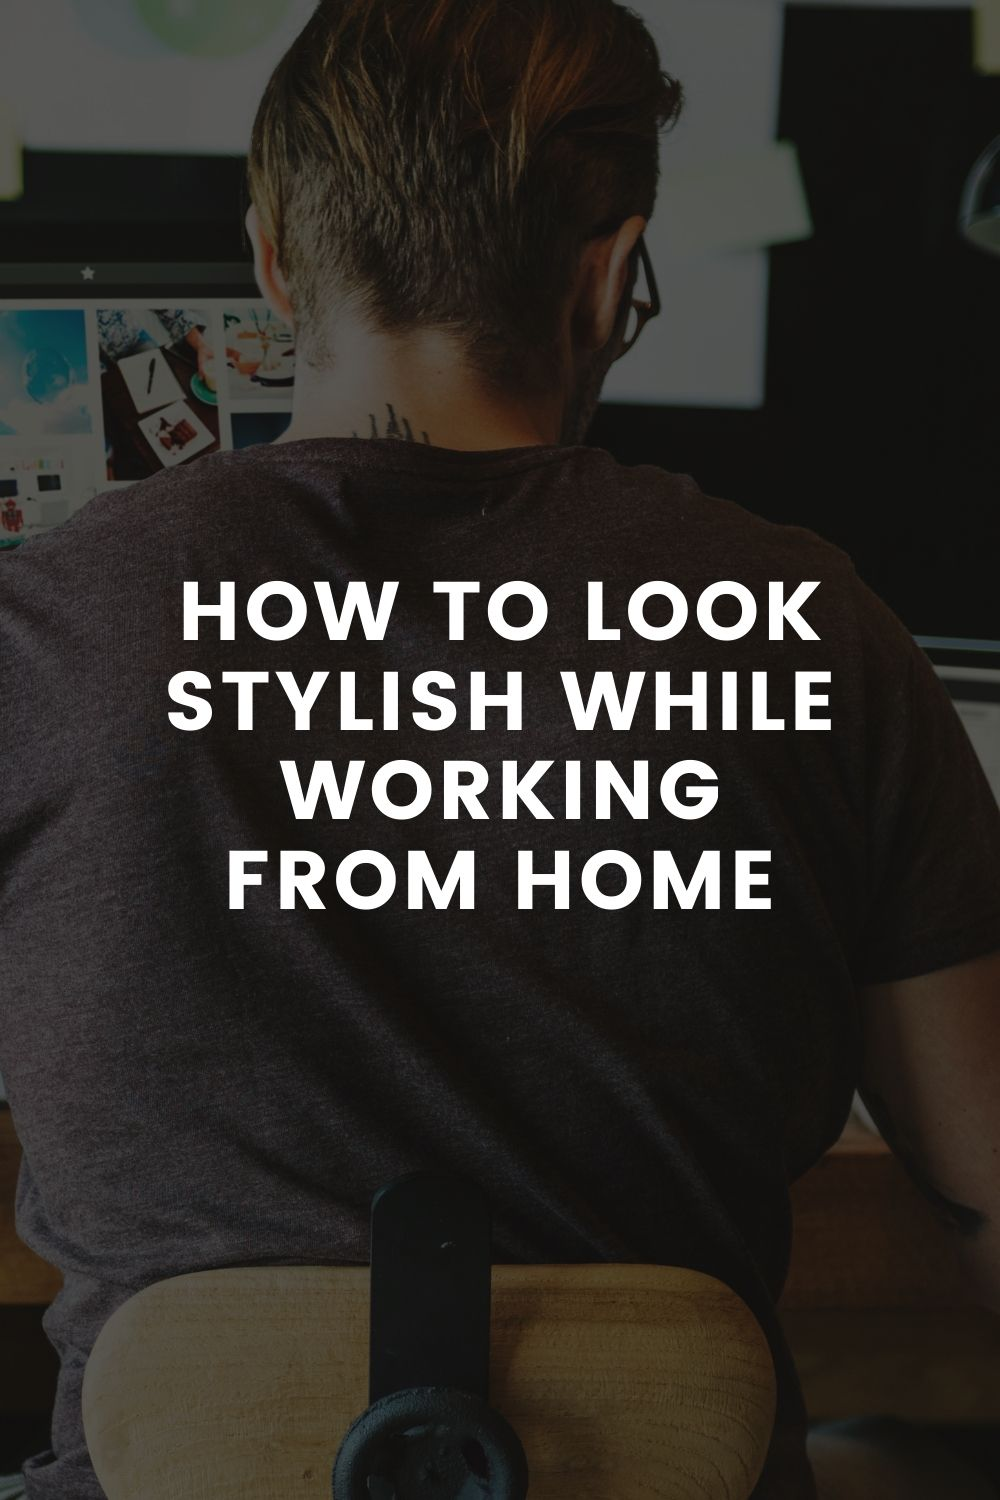 How to Look Stylish While Working from Home